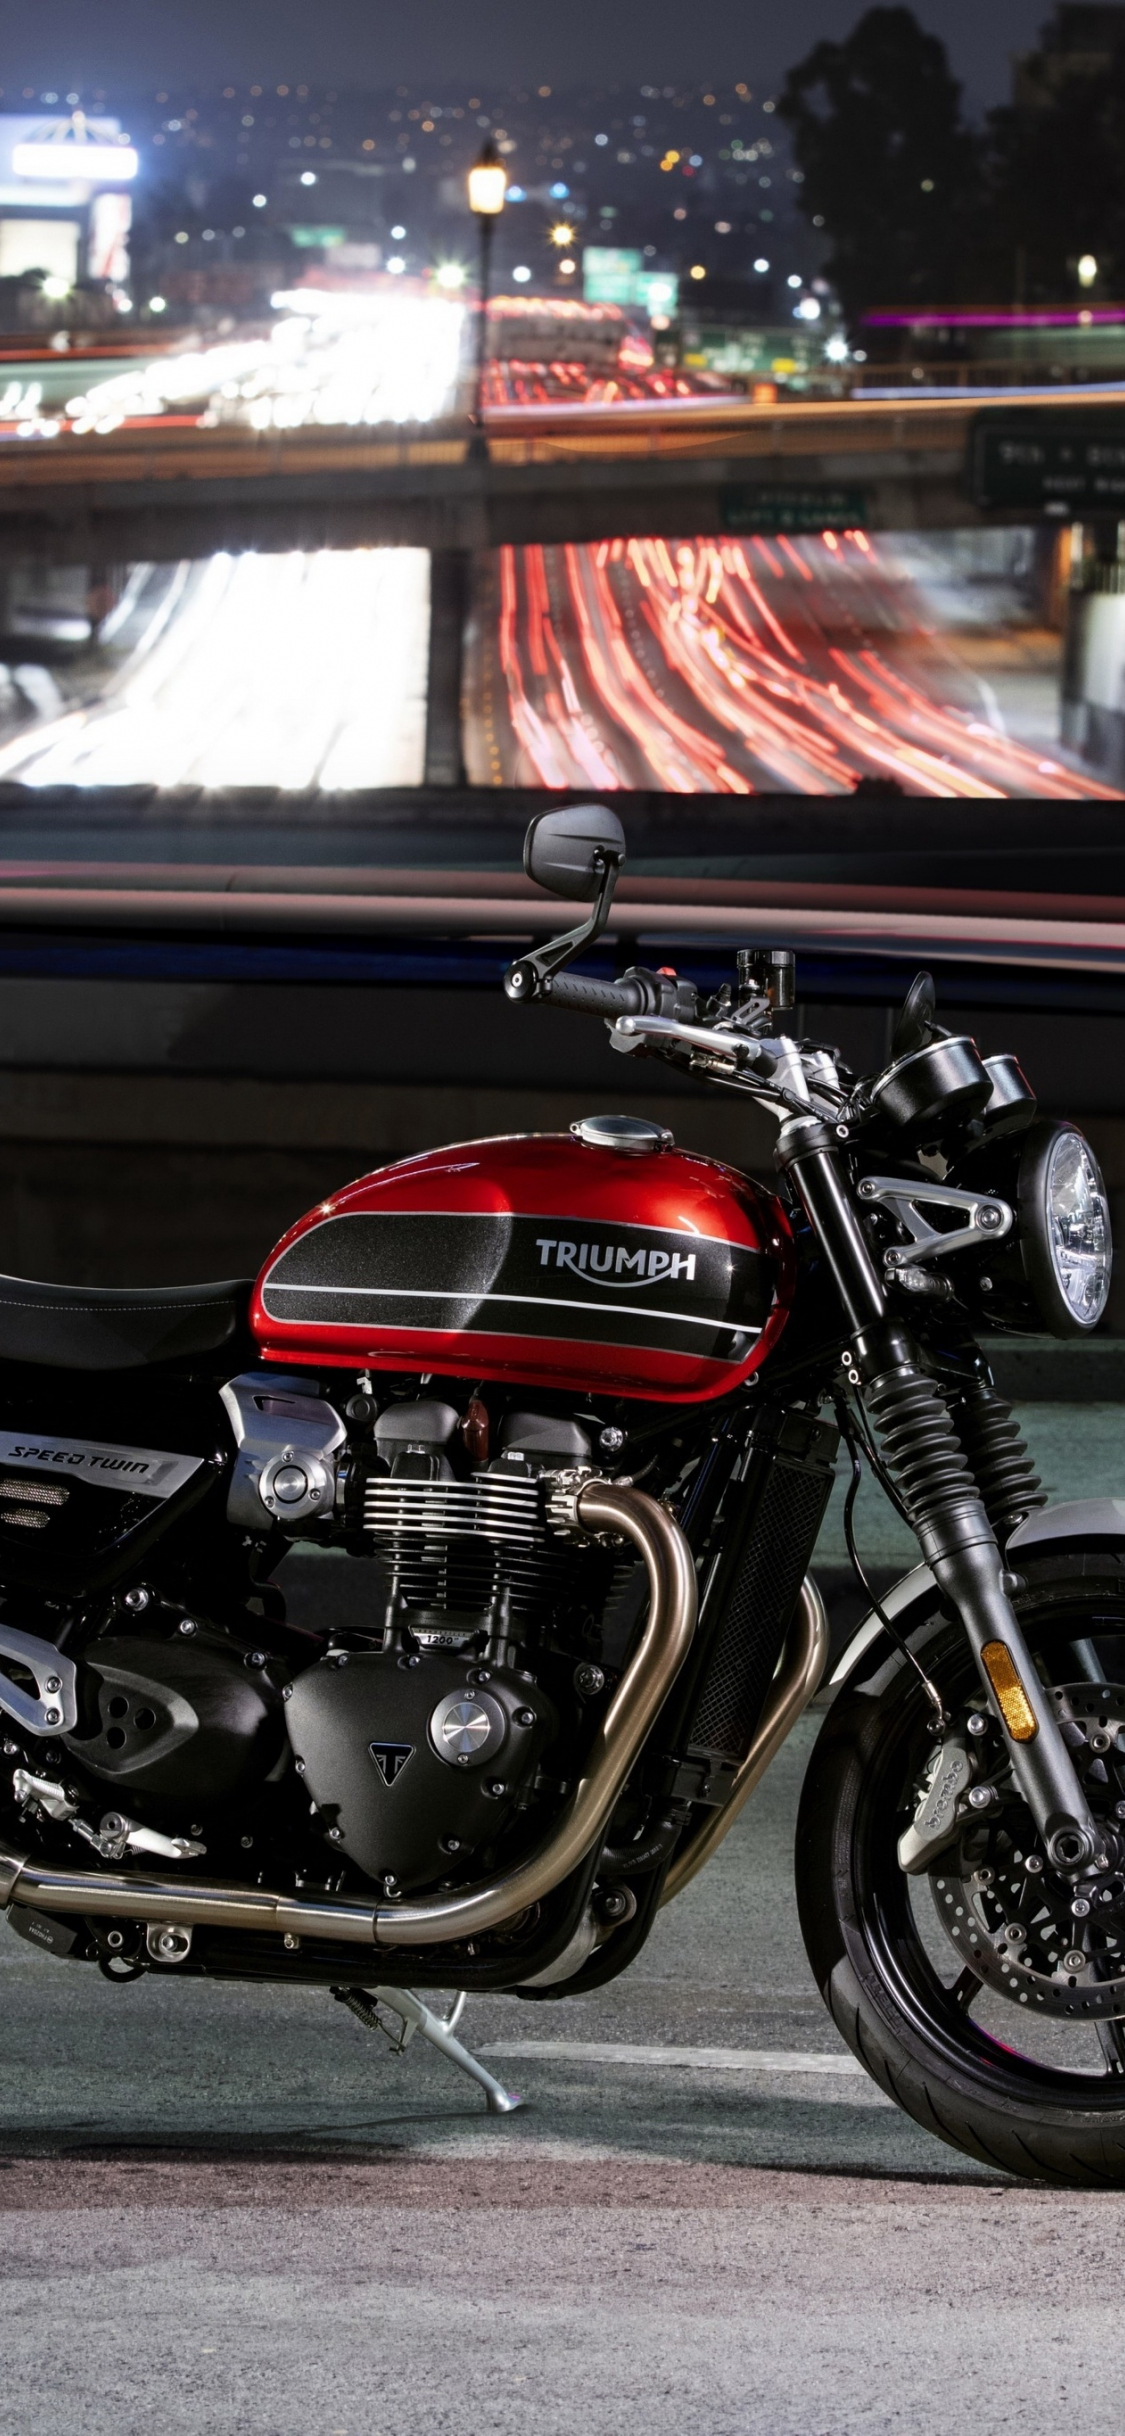 Download 1125x2436 Wallpaper 2019 Motorcycle Triumph Speed